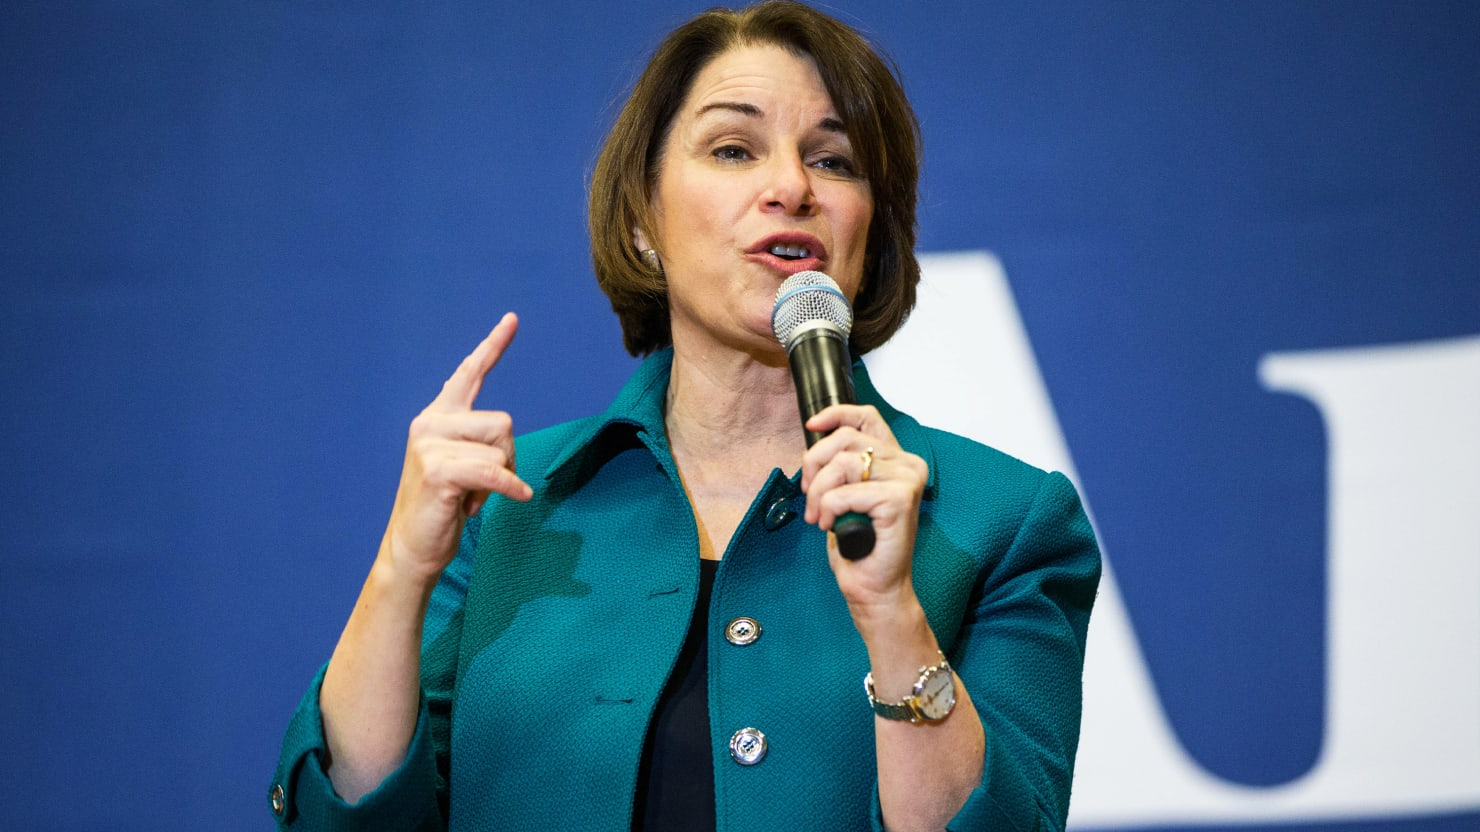 It's Suddenly Obvious: Amy Klobuchar Is the Democrats' Best Bet